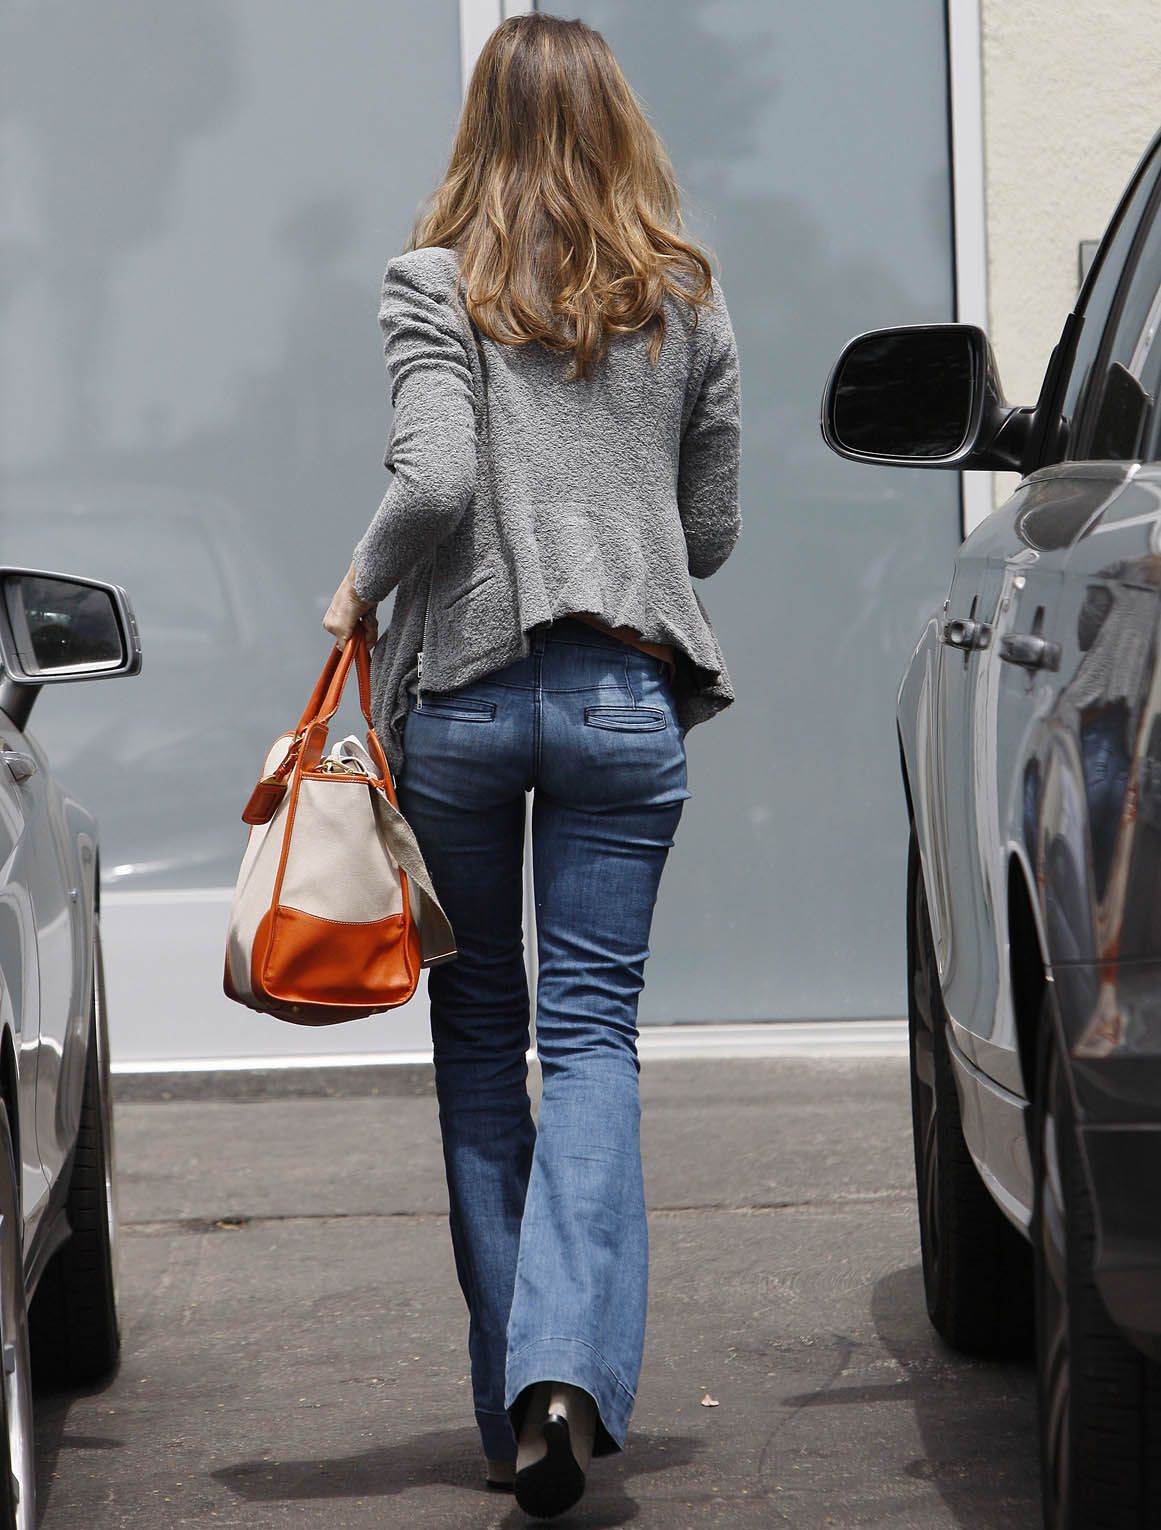 Pictures of jessica albas butt crack — pic 3